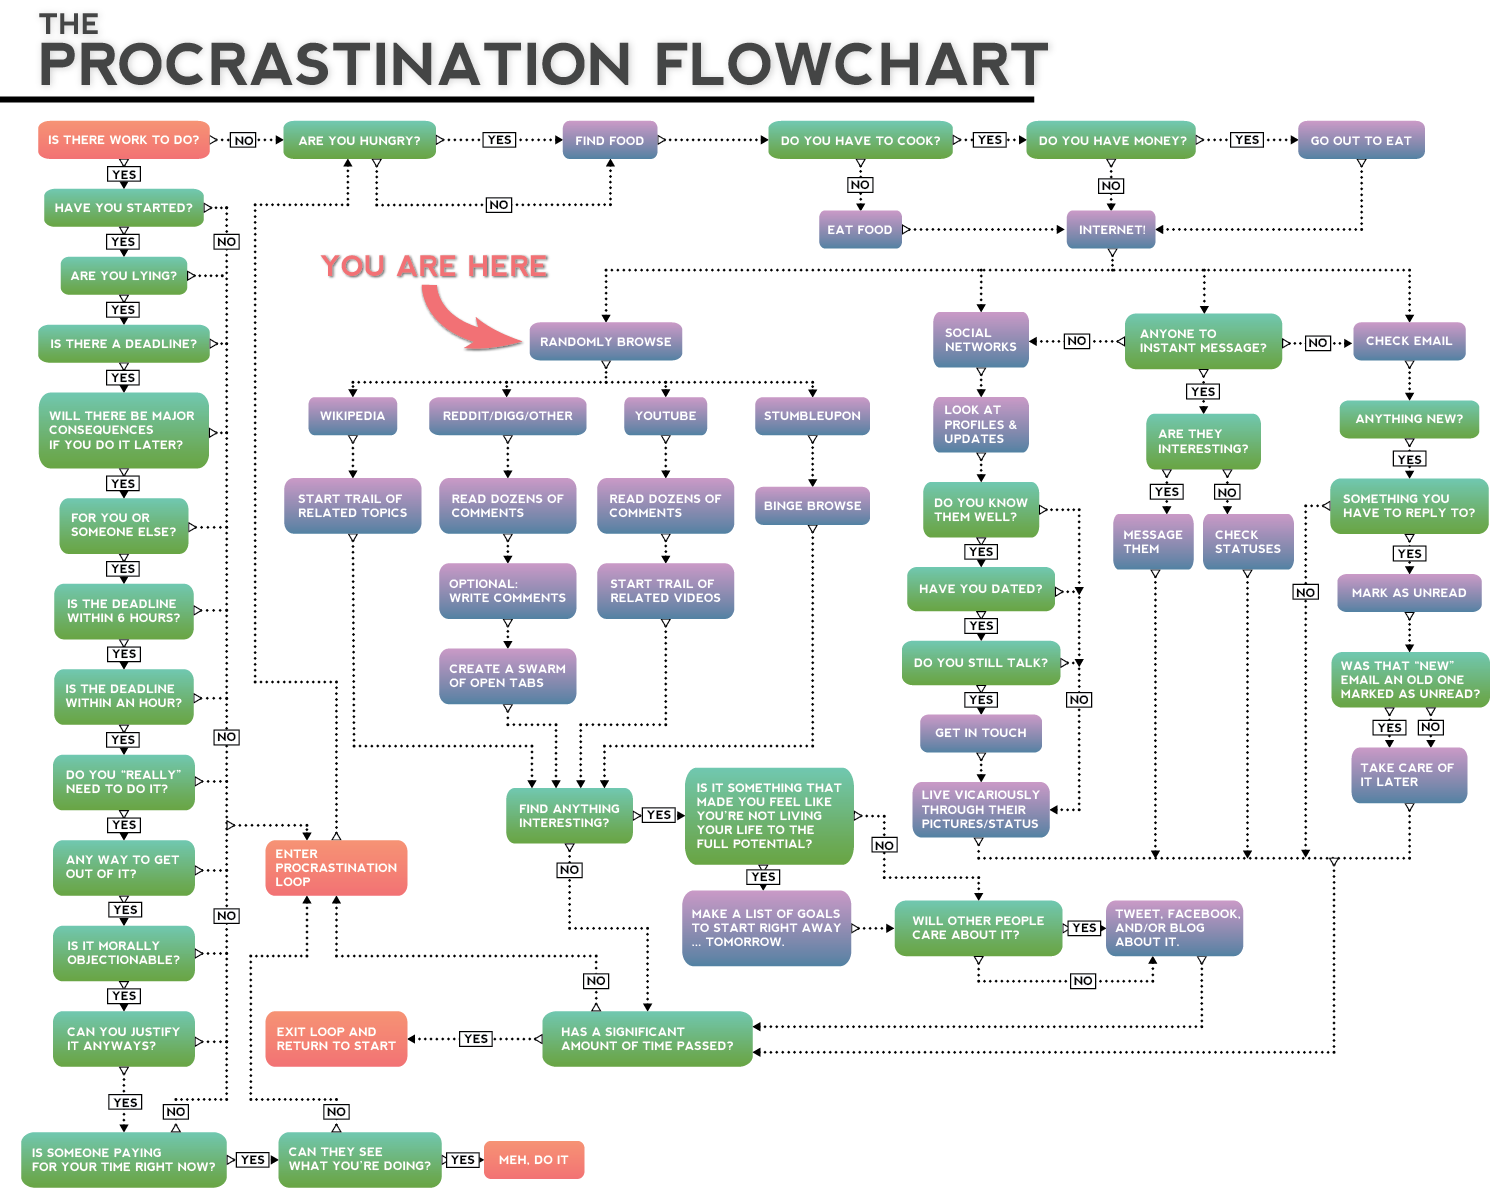 The Procrastination Flowchart